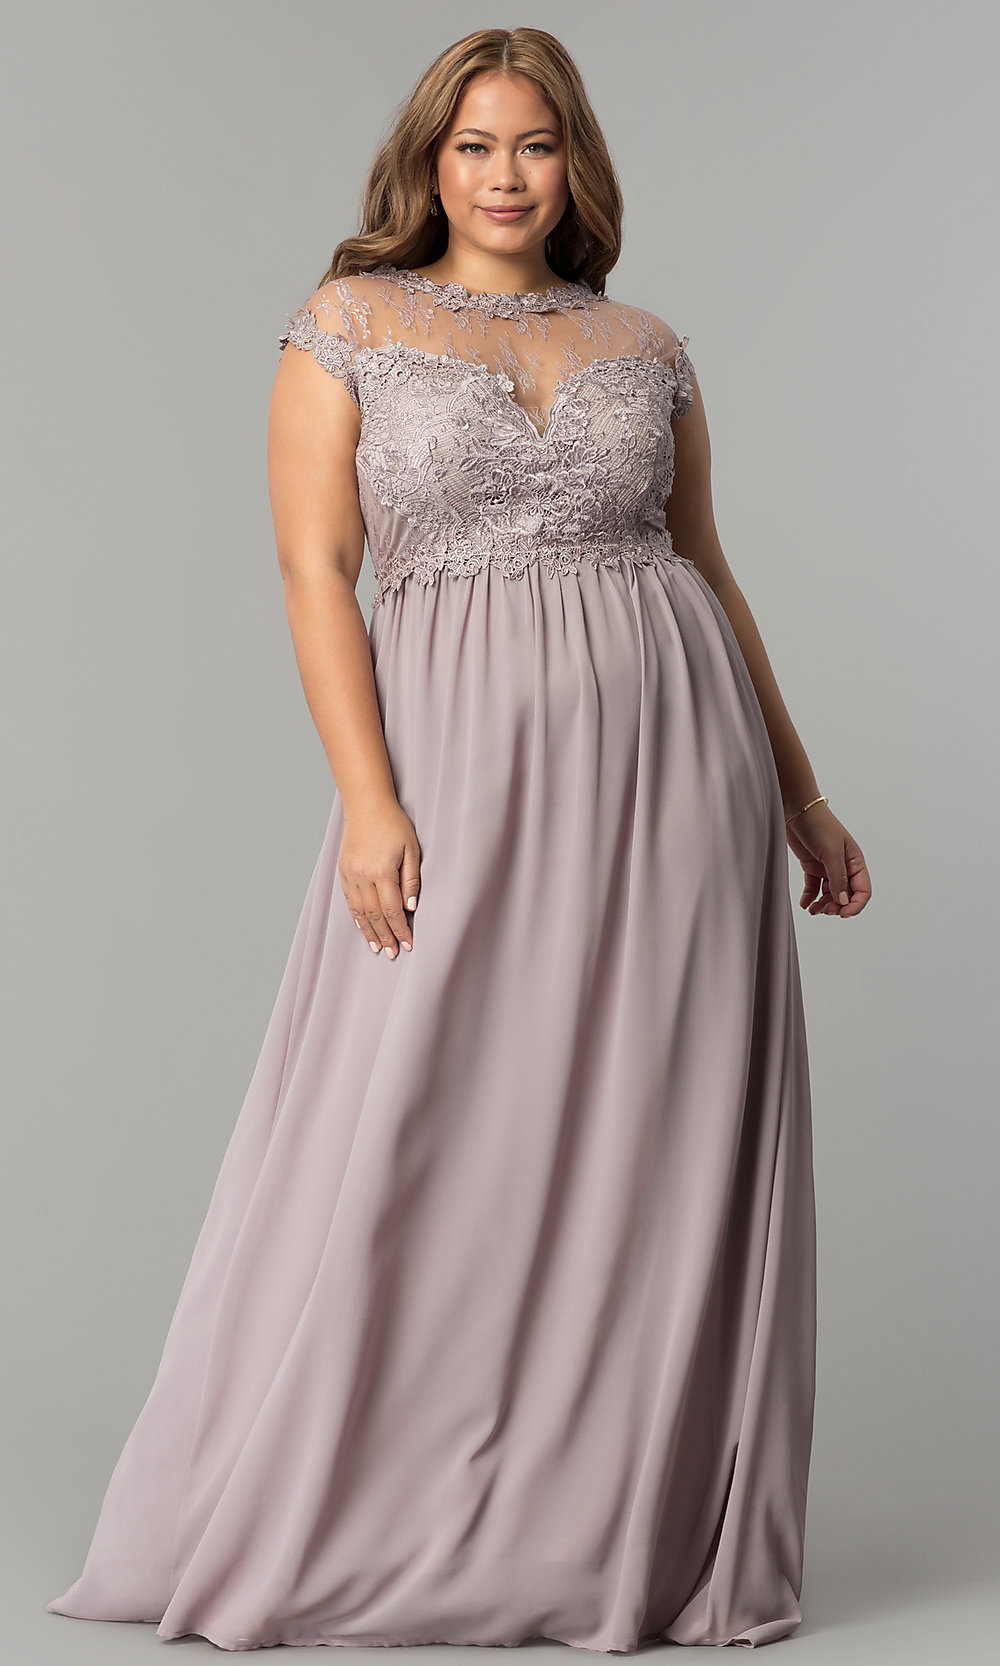 Plus Size Homecoming Dresses Under 100 Dollars | Lixnet AG